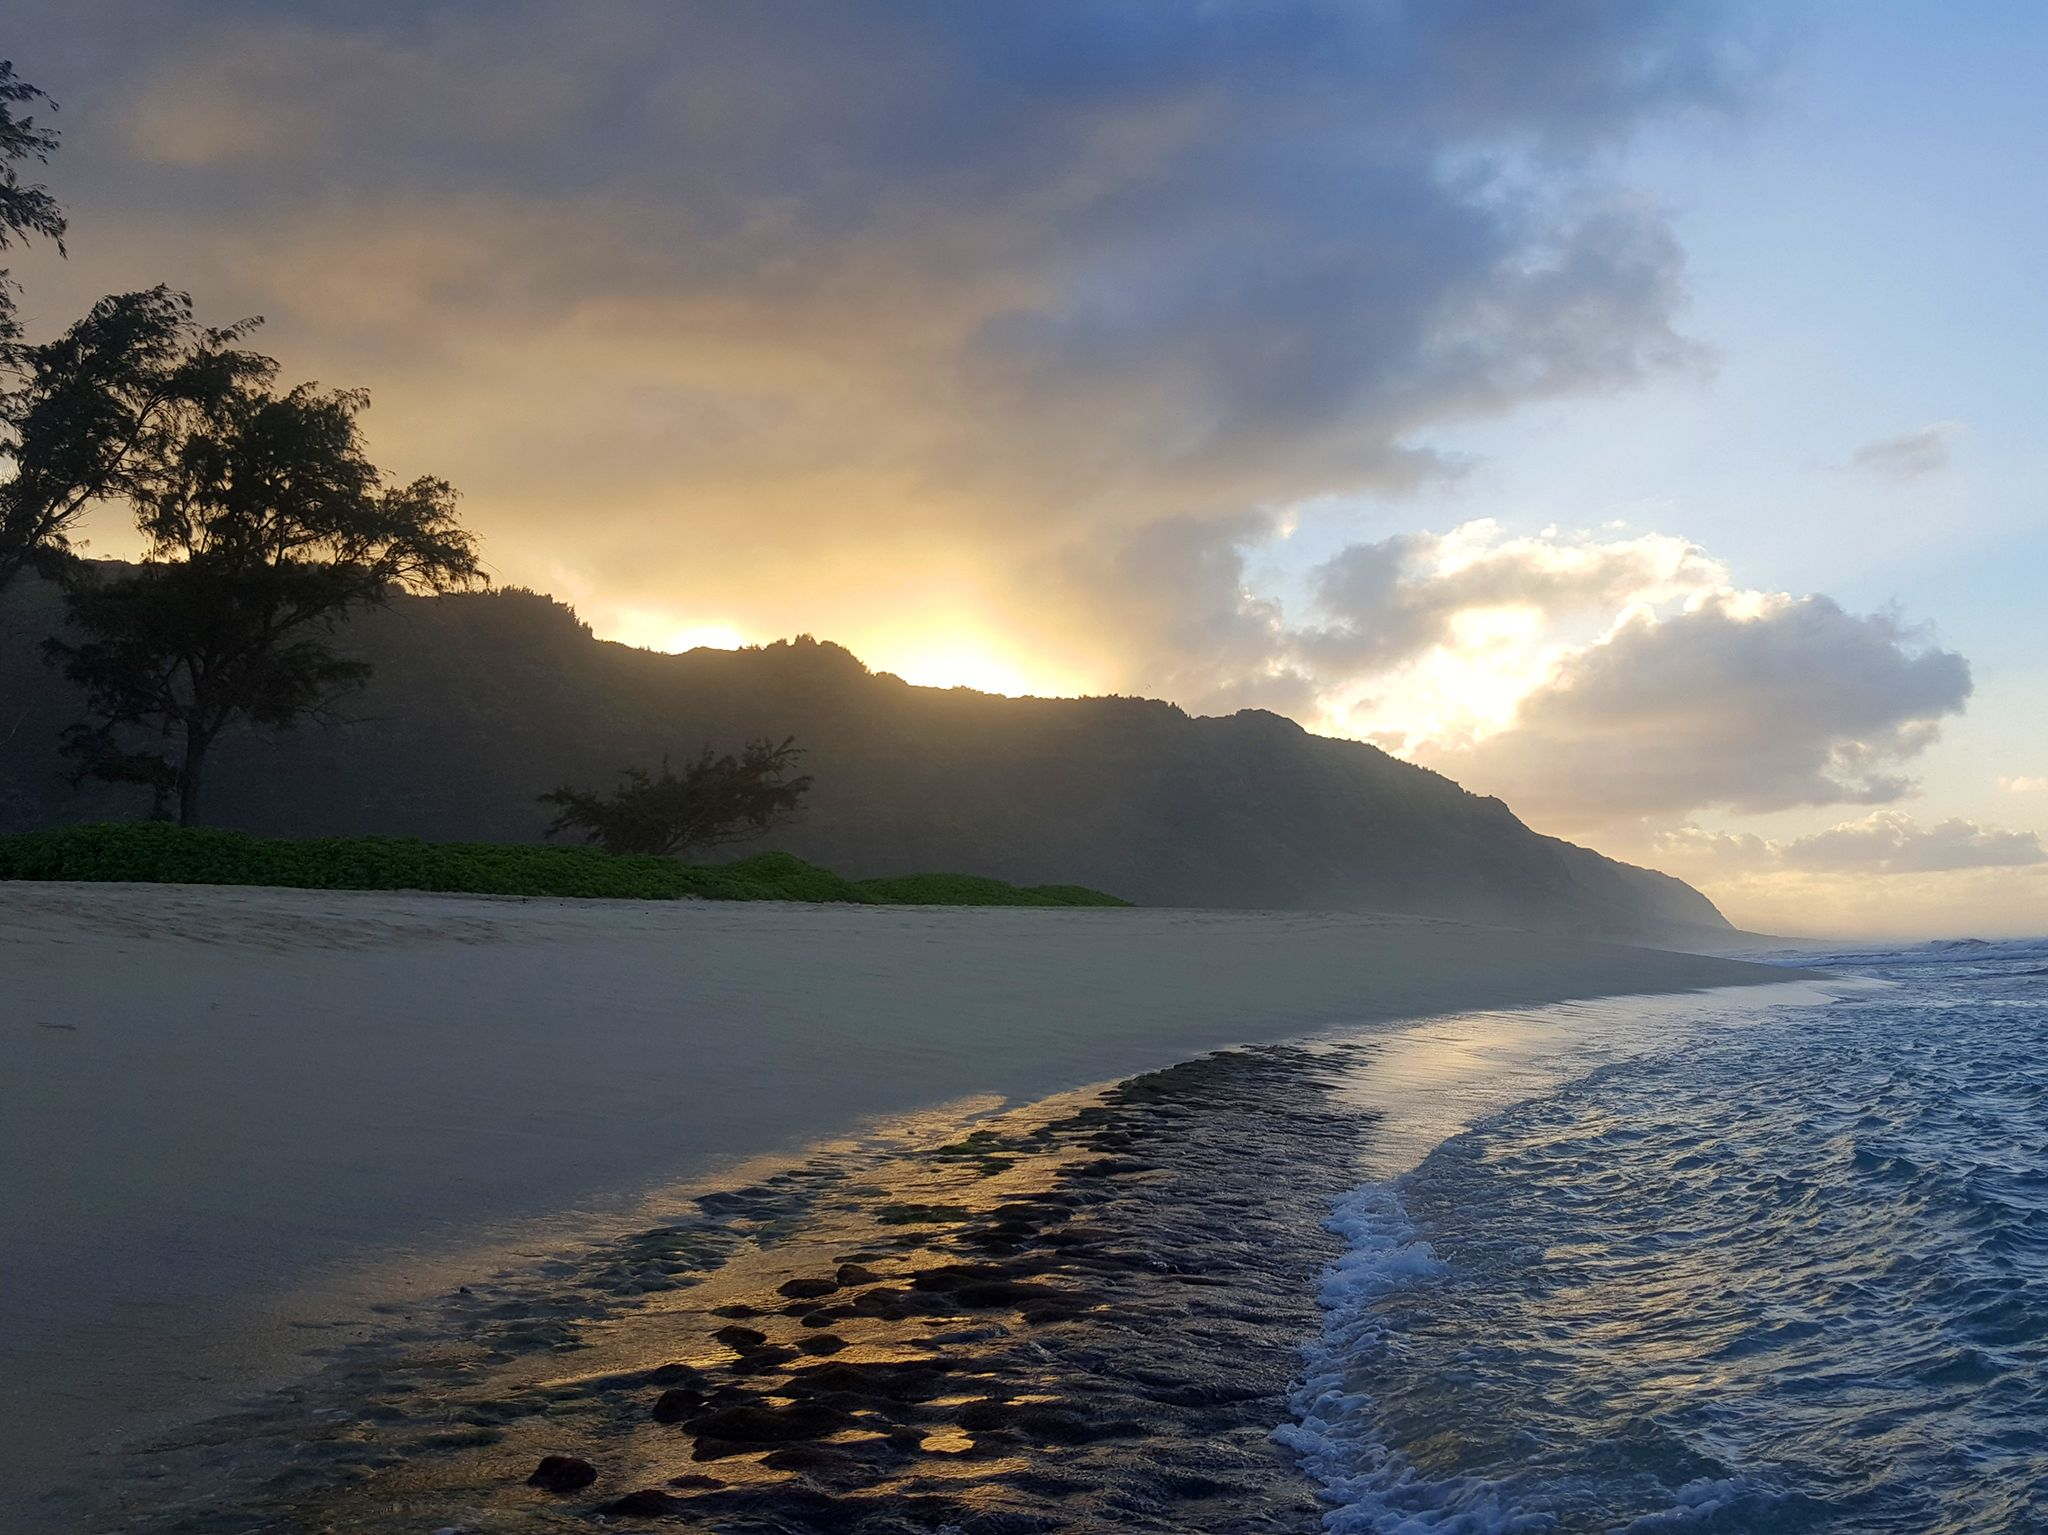 Hawaii North Shore approaching sunset.  This image is from Drain the Oceans. [Photo of the day - April 2020]